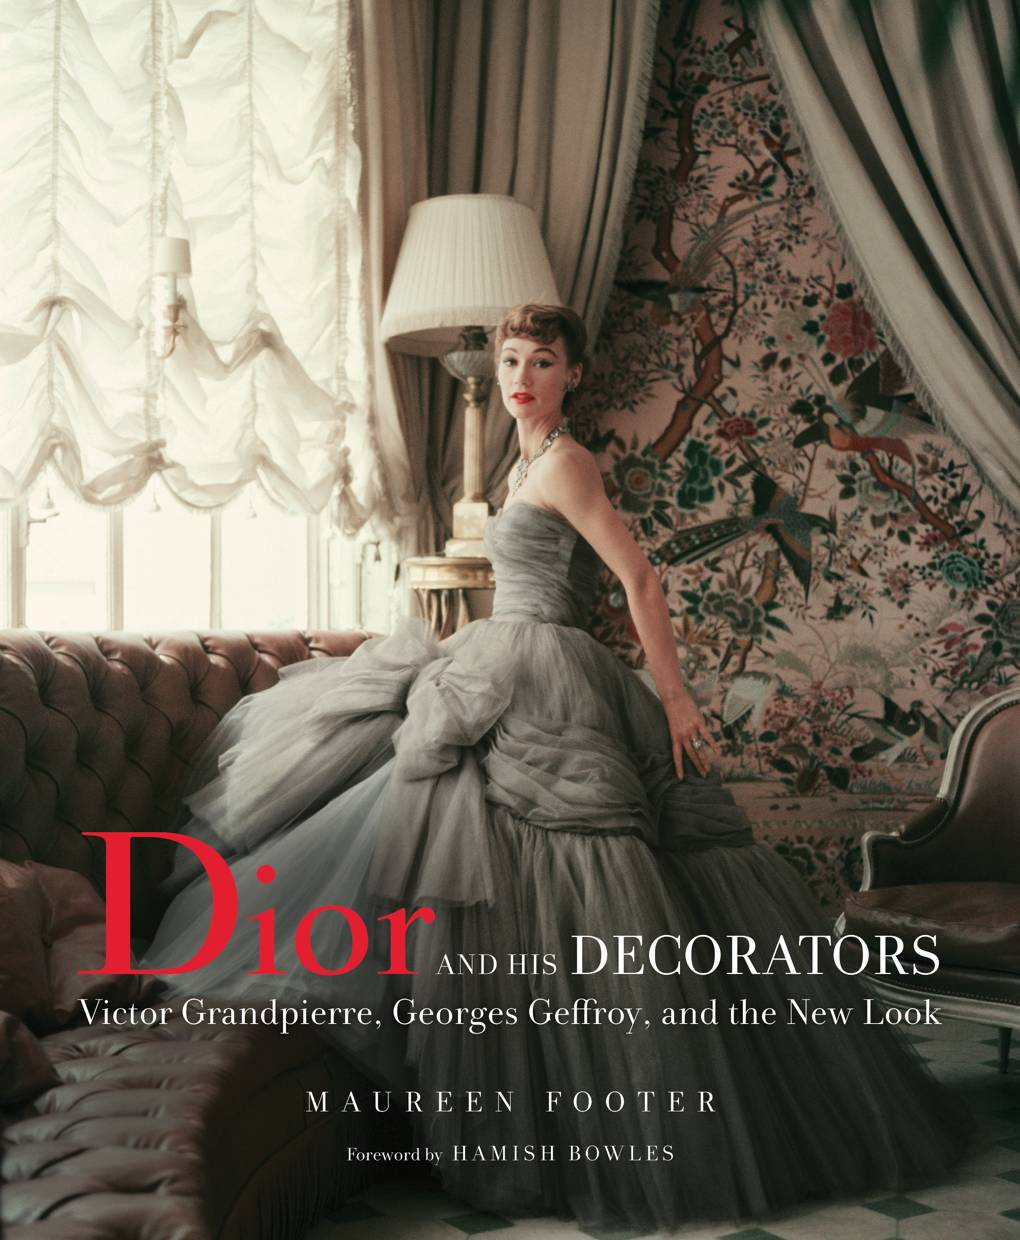 Dior And His Decorators by Maureen Footer